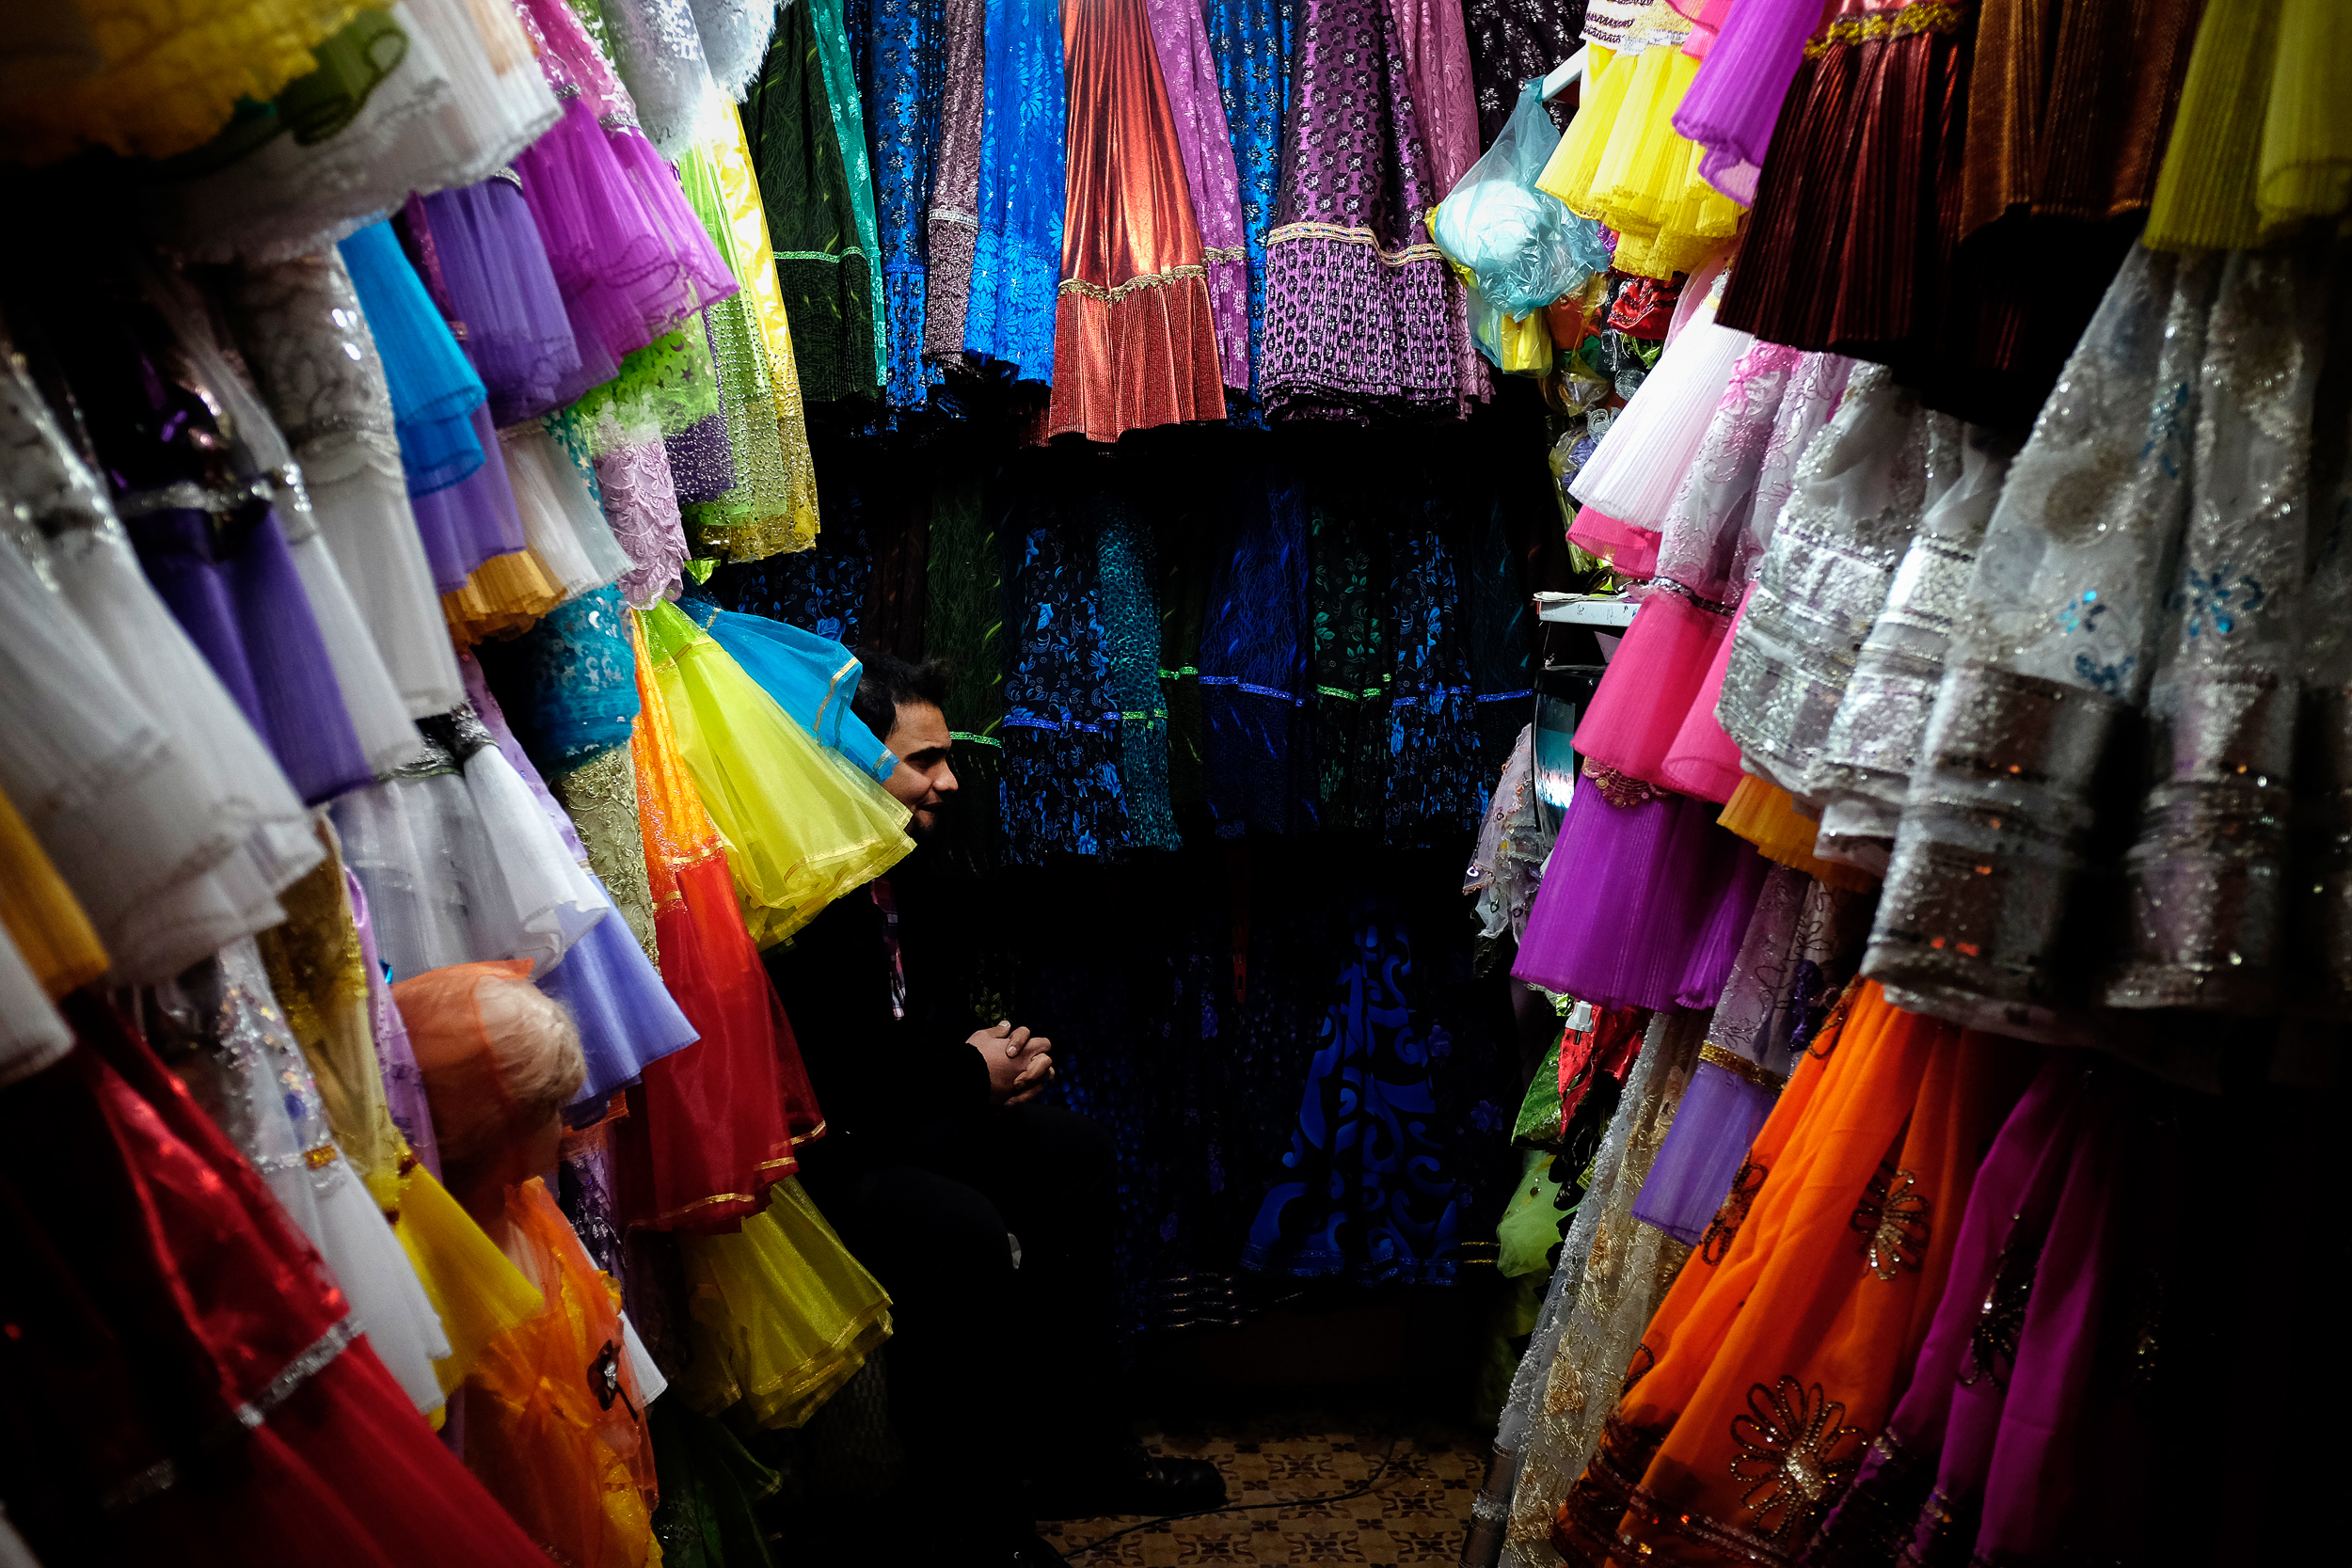 A man watches a local football game in his fabric store in Esfahan.